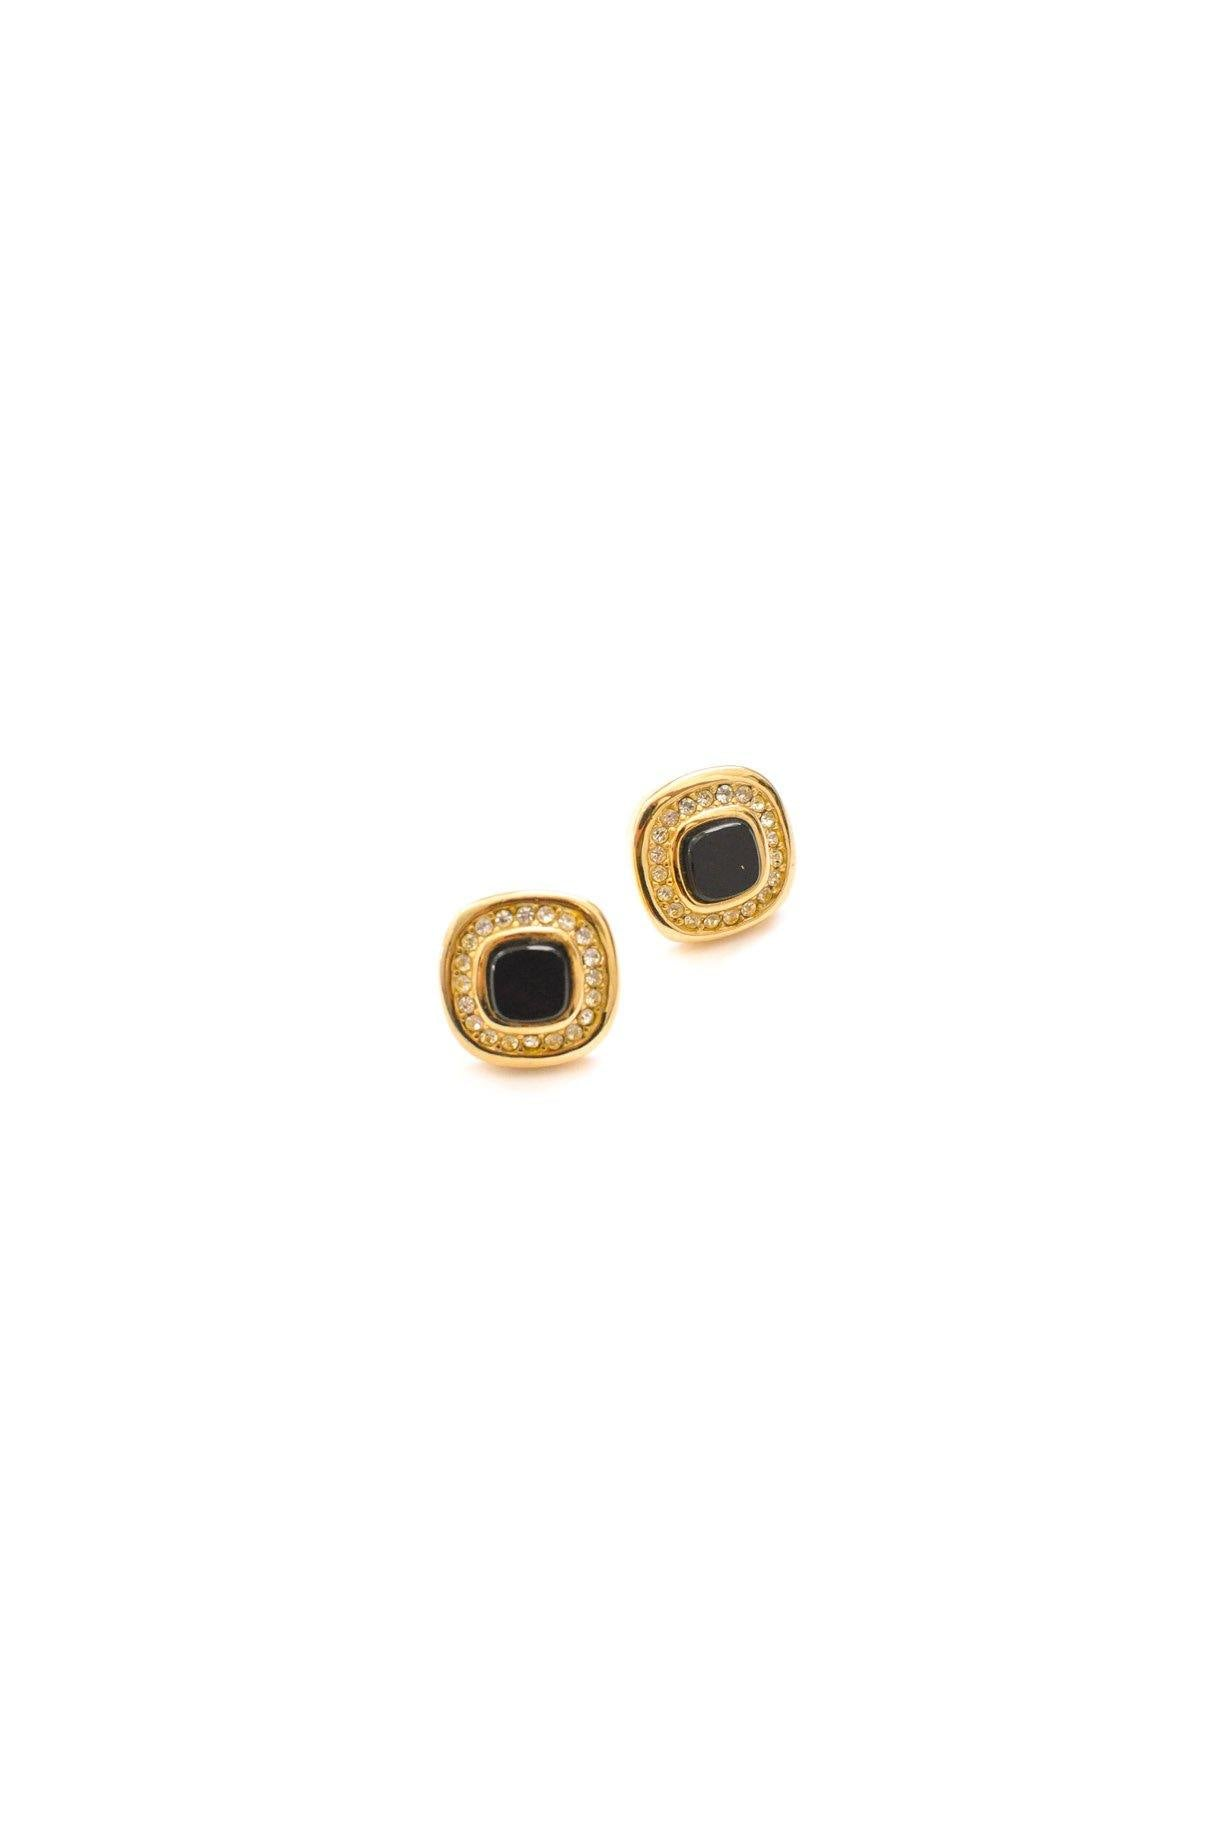 Christian Dior Square Pierced Earrings